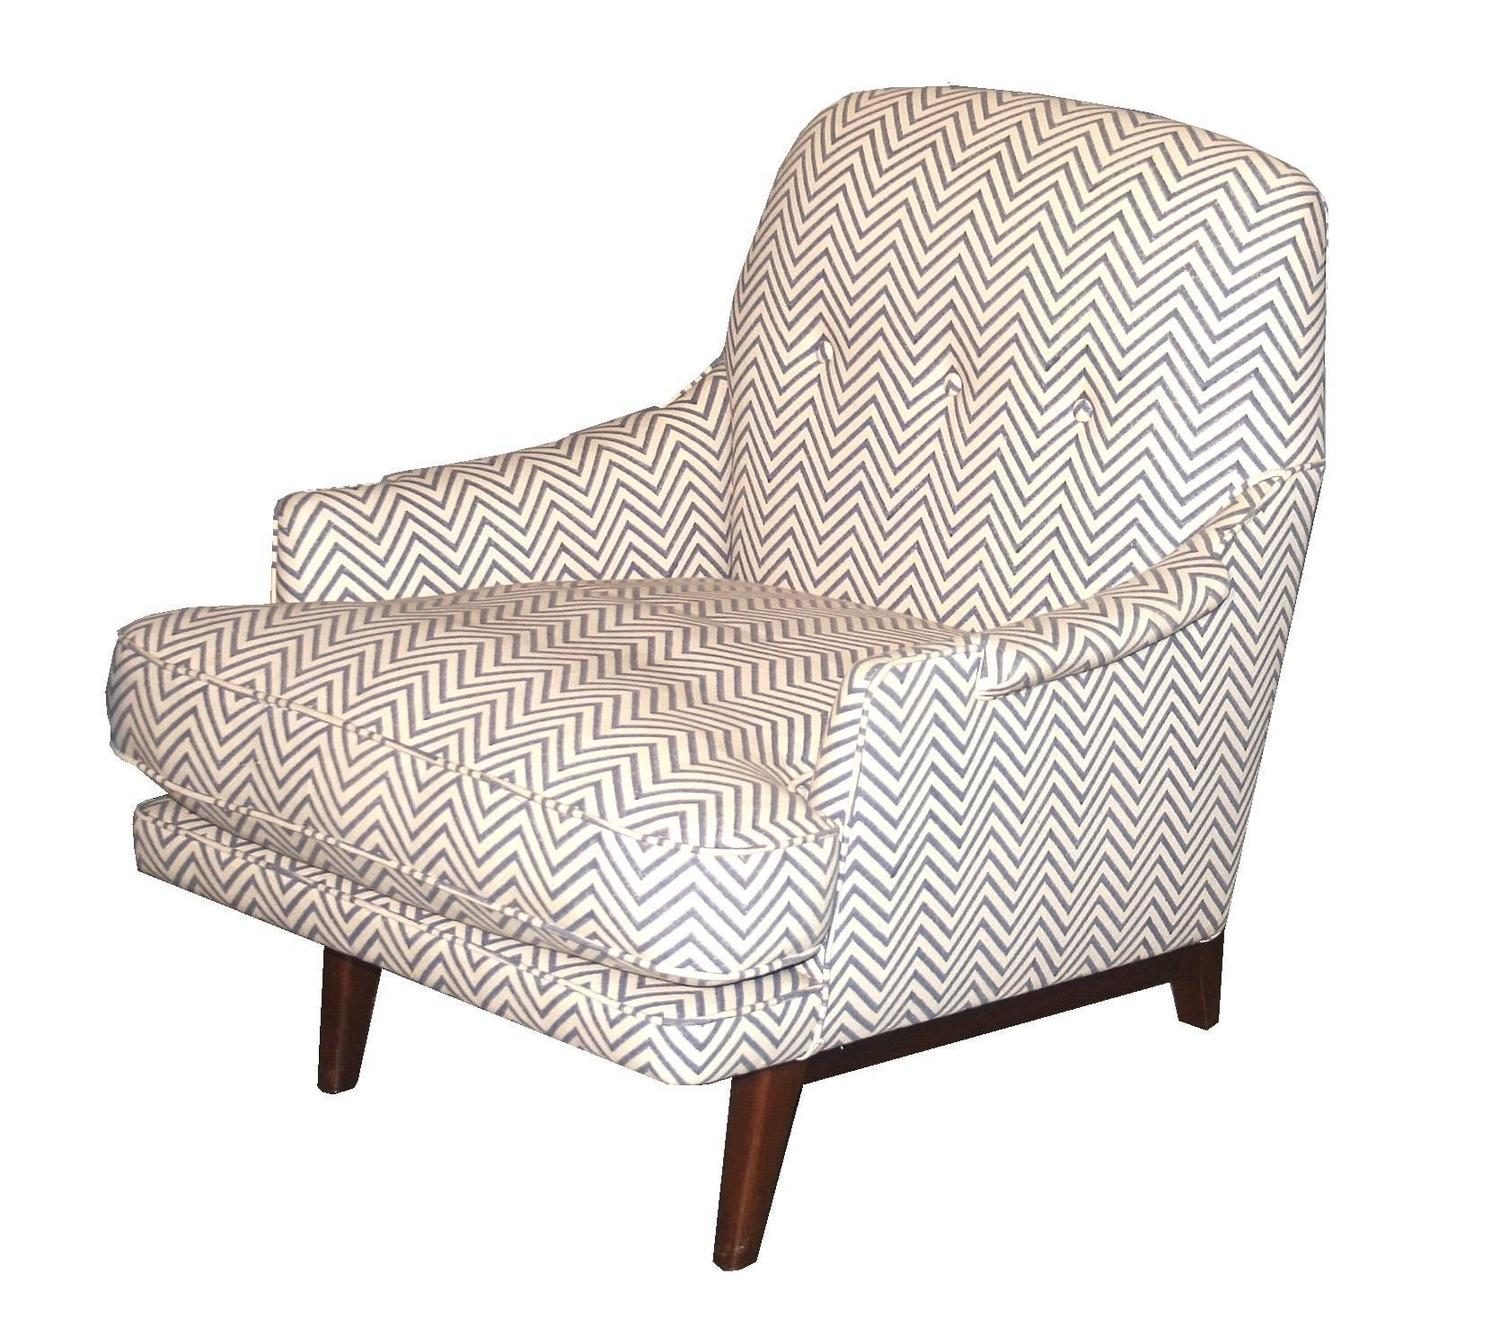 Classic Modern Lounge Chair and Ottoman by Dunbar at 1stdibs